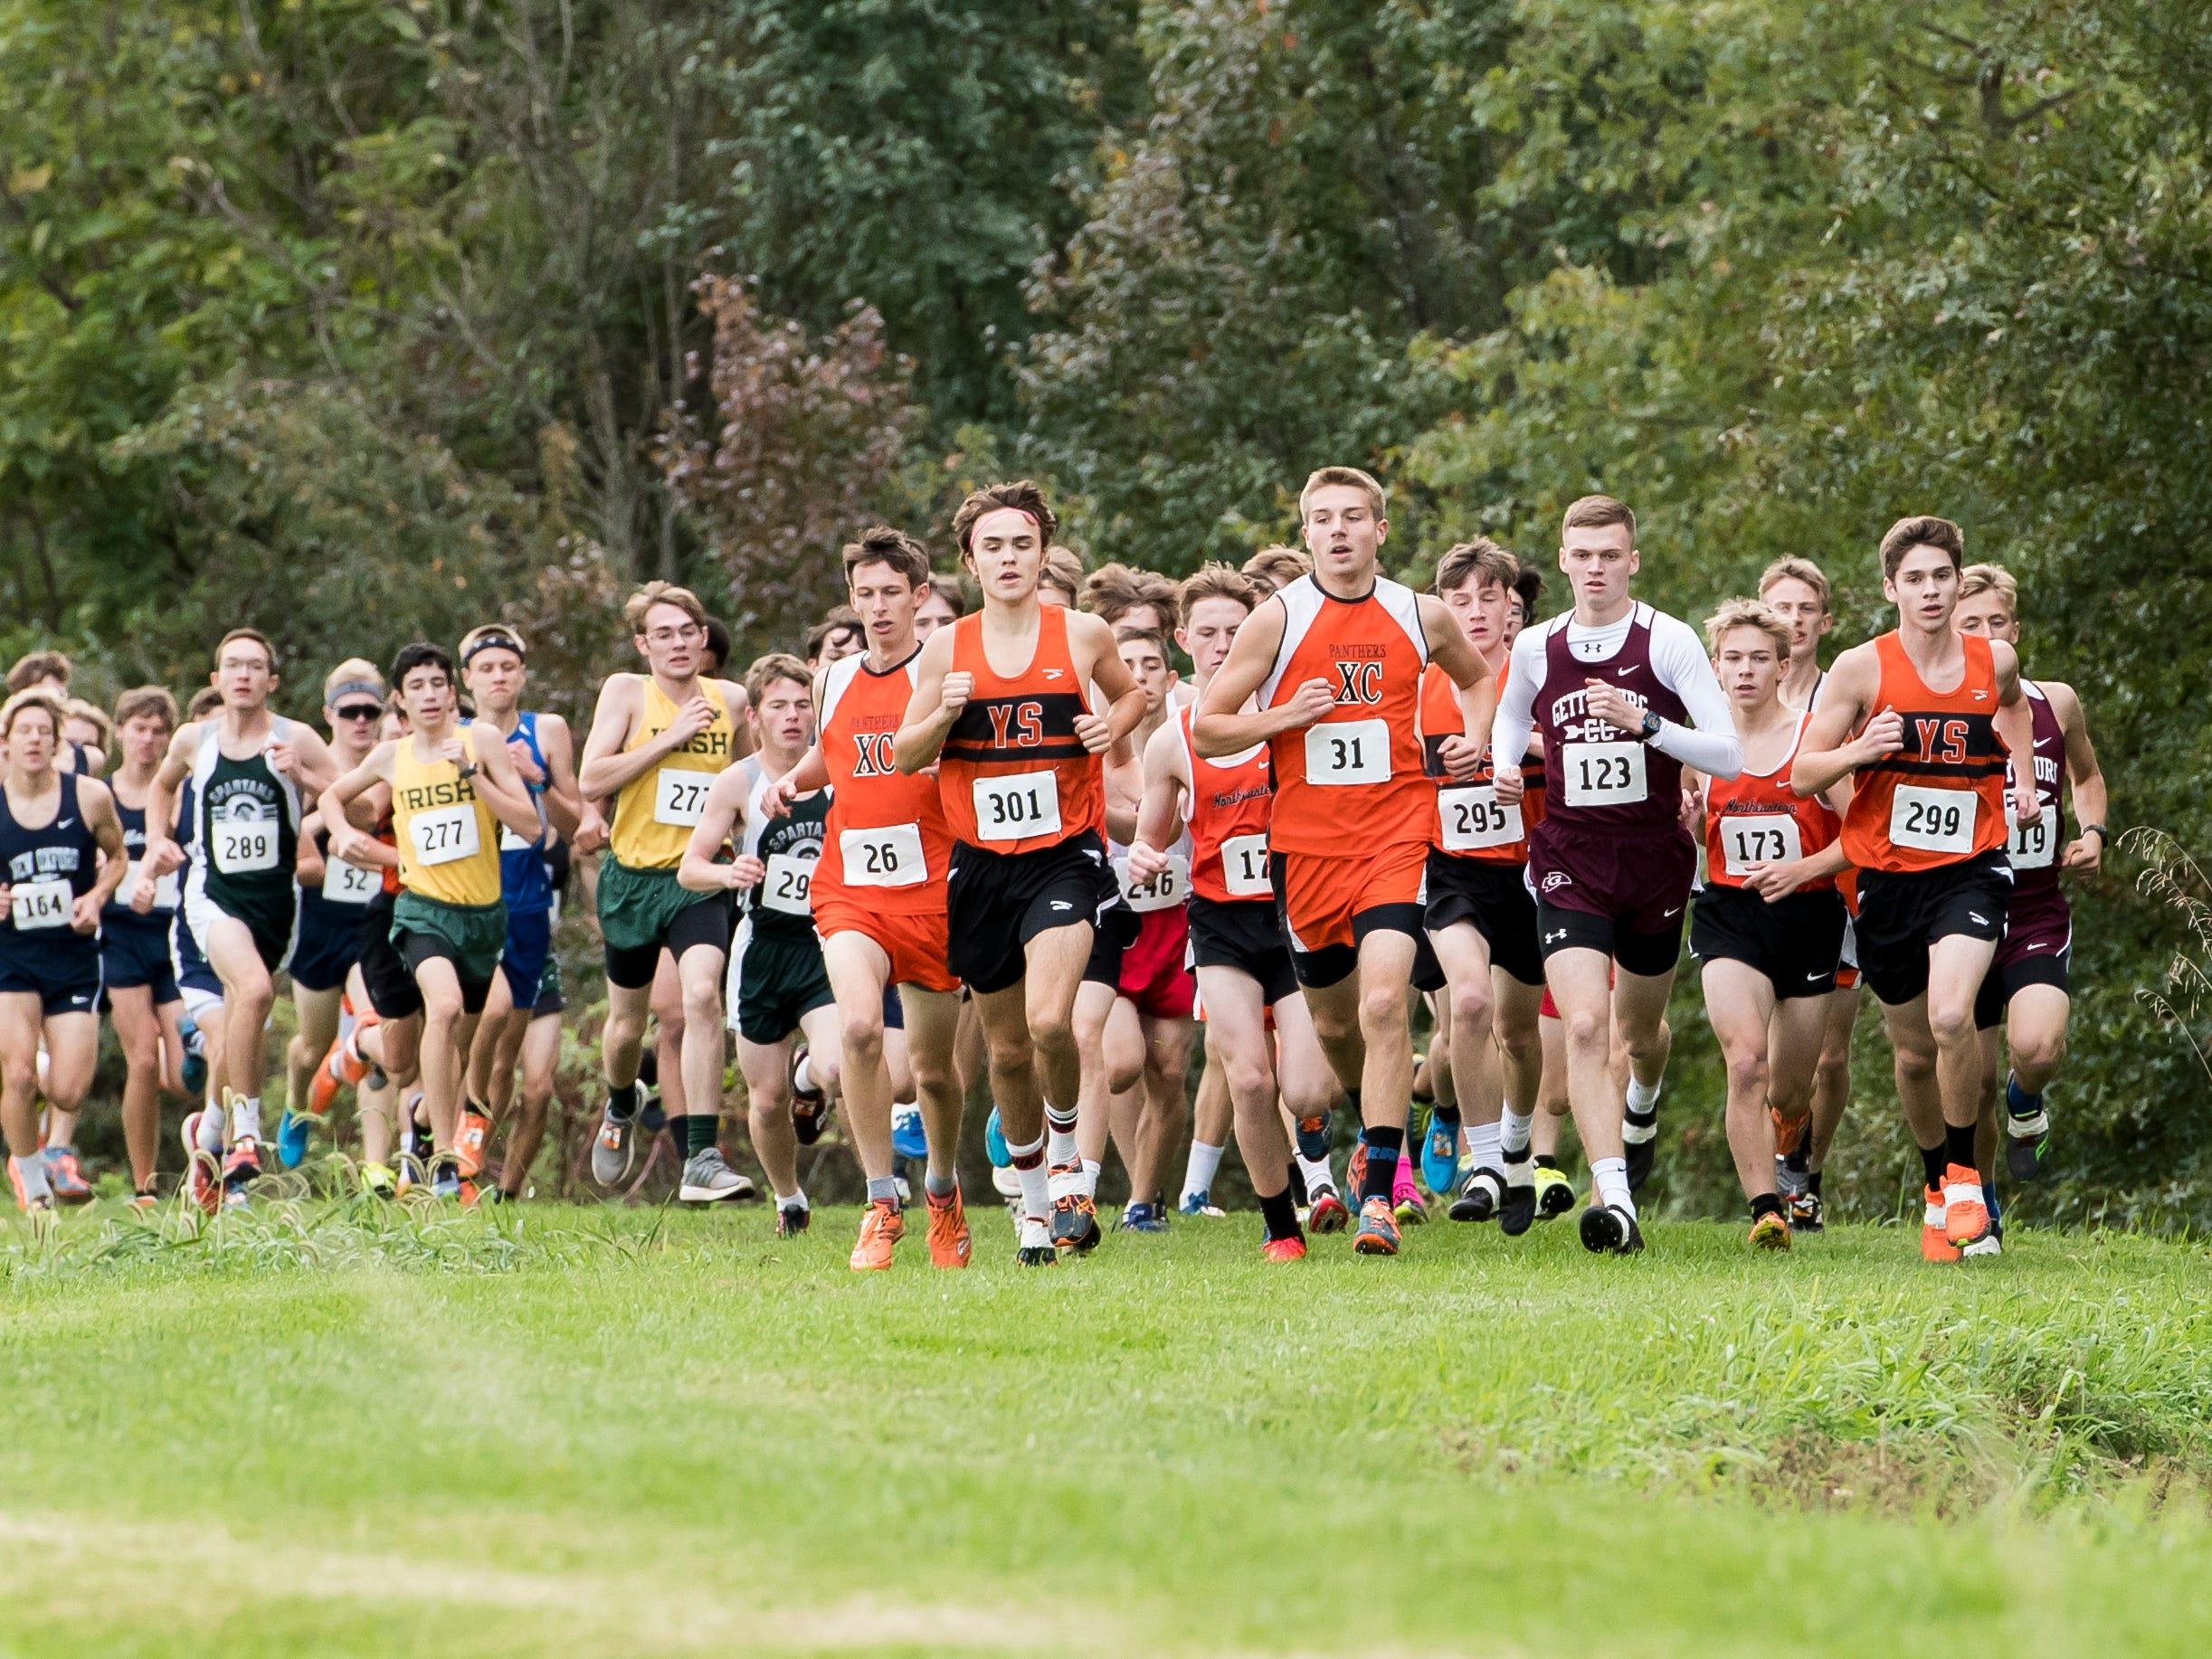 Runners compete in the YAIAA cross country championships at Gettysburg Area High School on Tuesday, October 16, 2018.